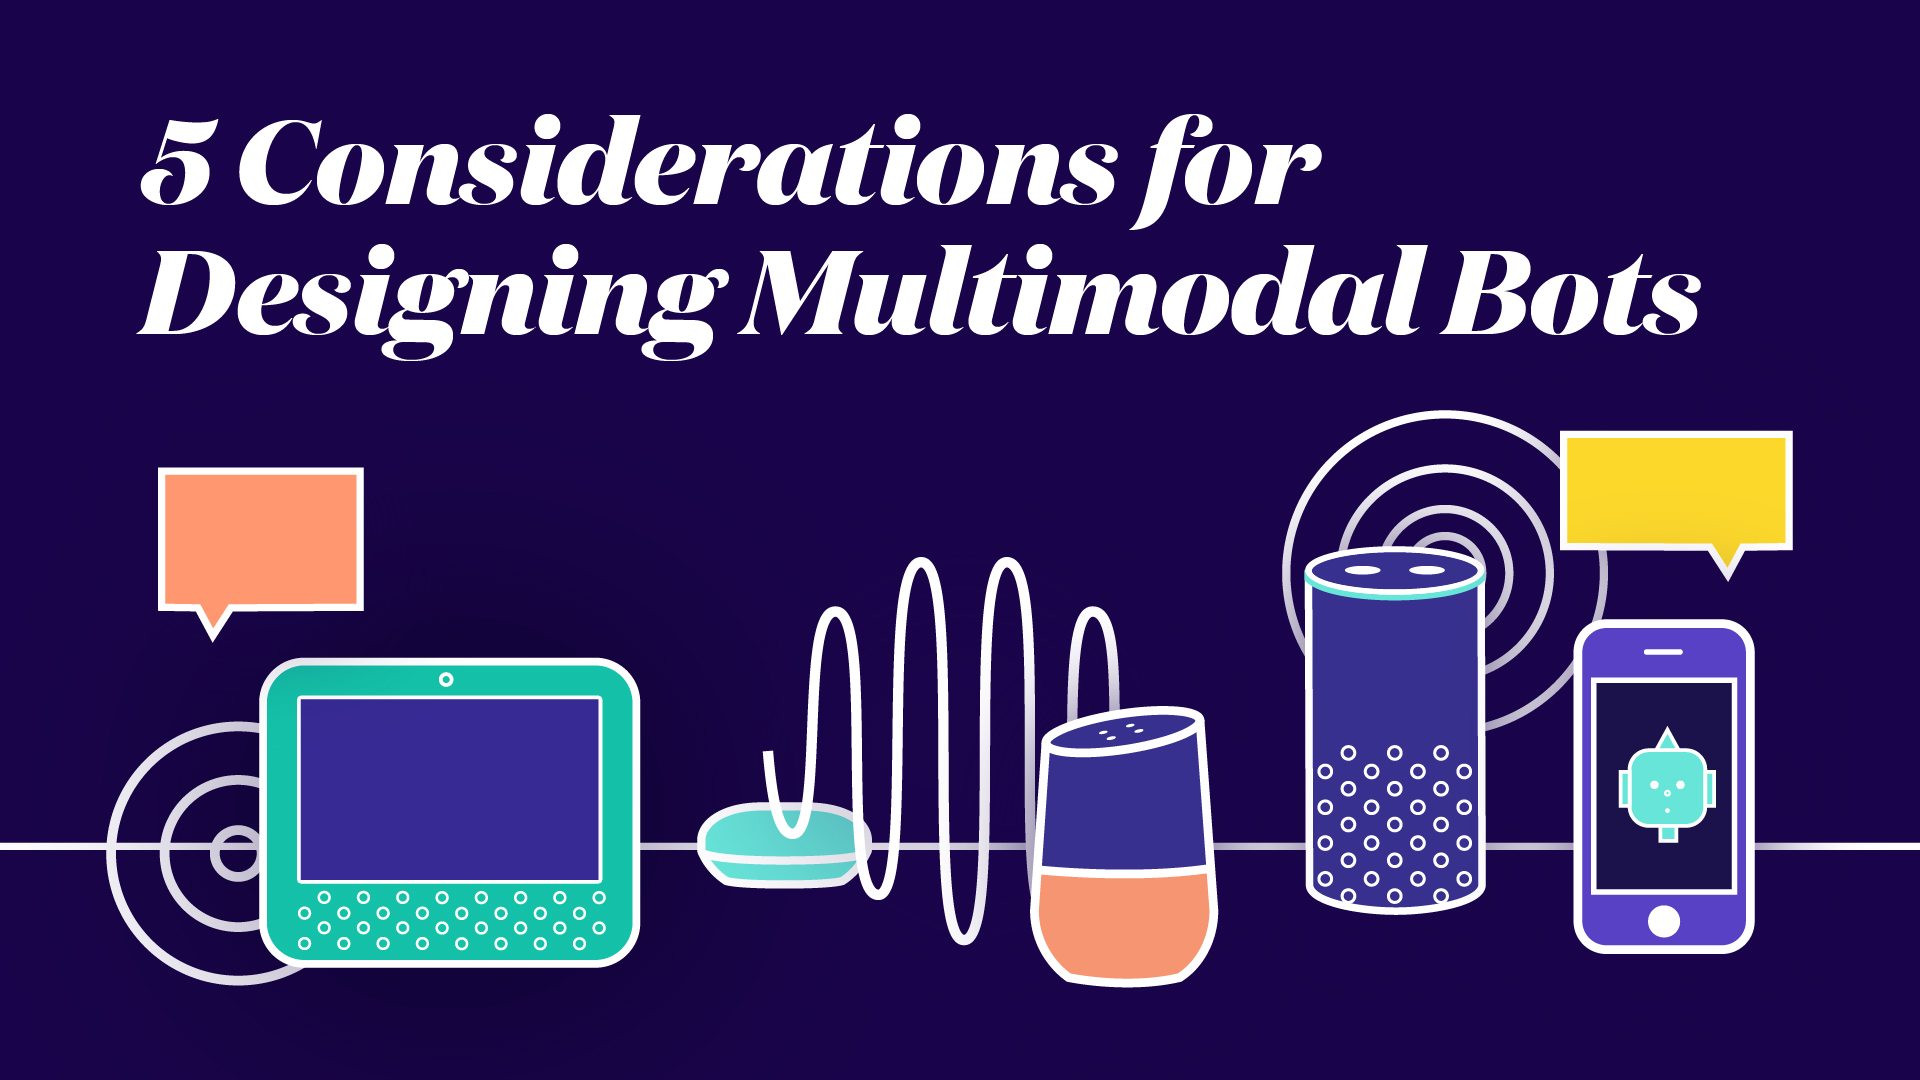 5 Considerations for Designing Multimodal Bots